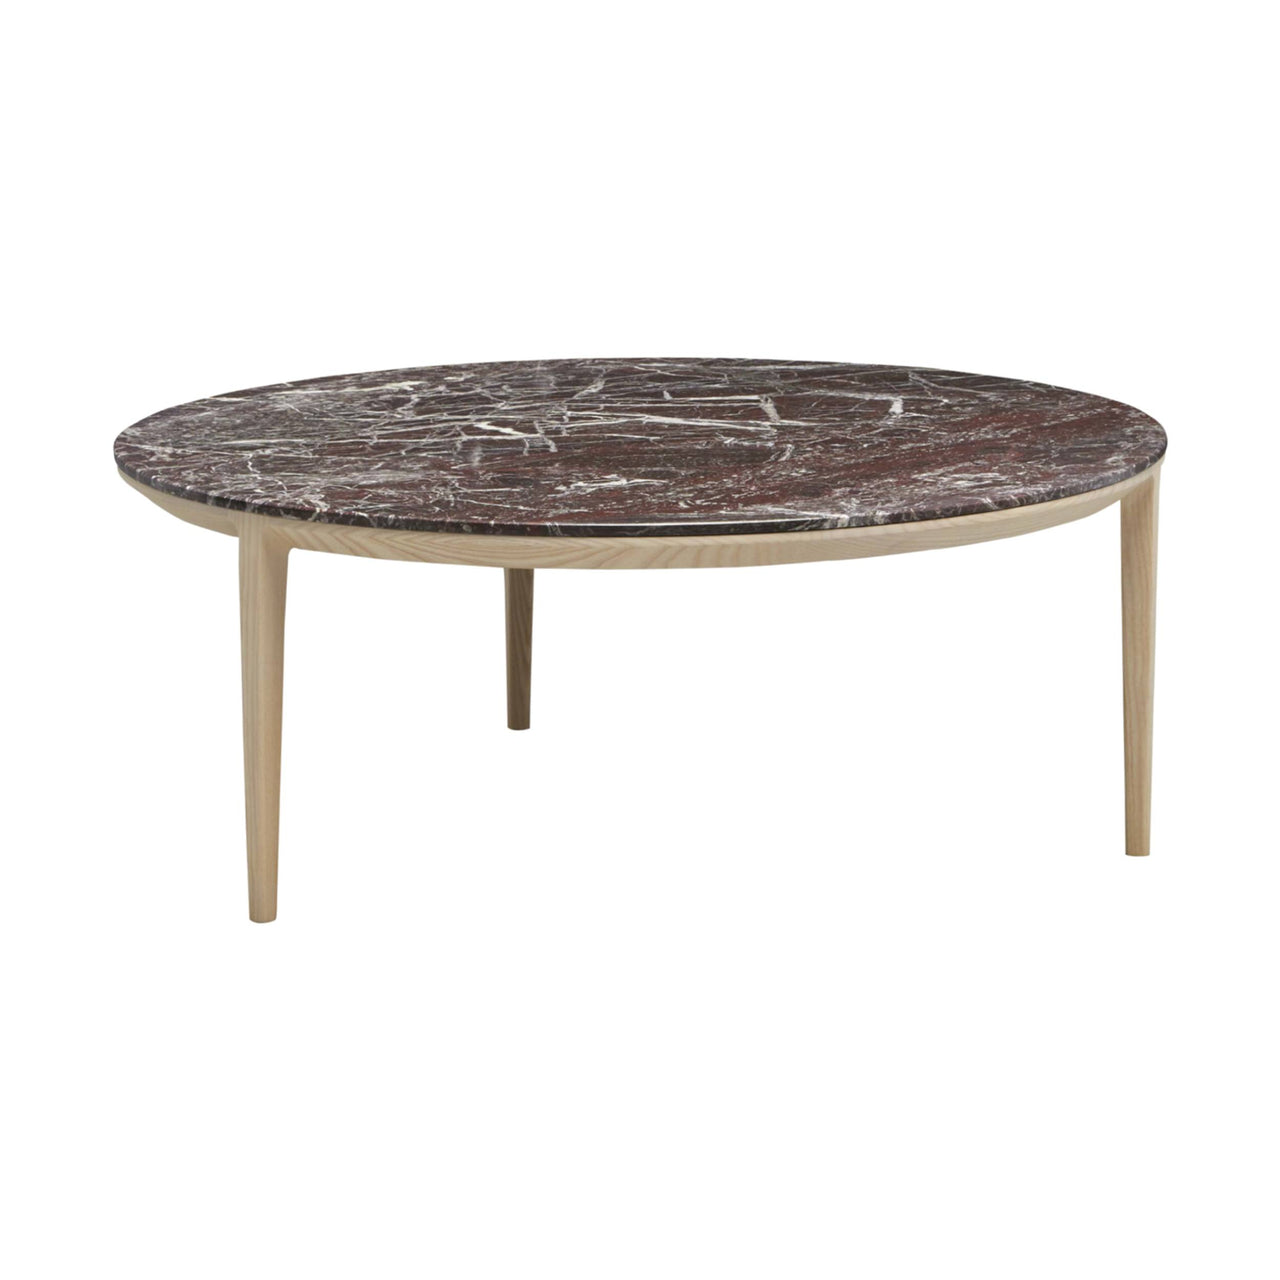 Etoile Side + Coffee Table: Large + Natural Stained Ash + Rose Marble